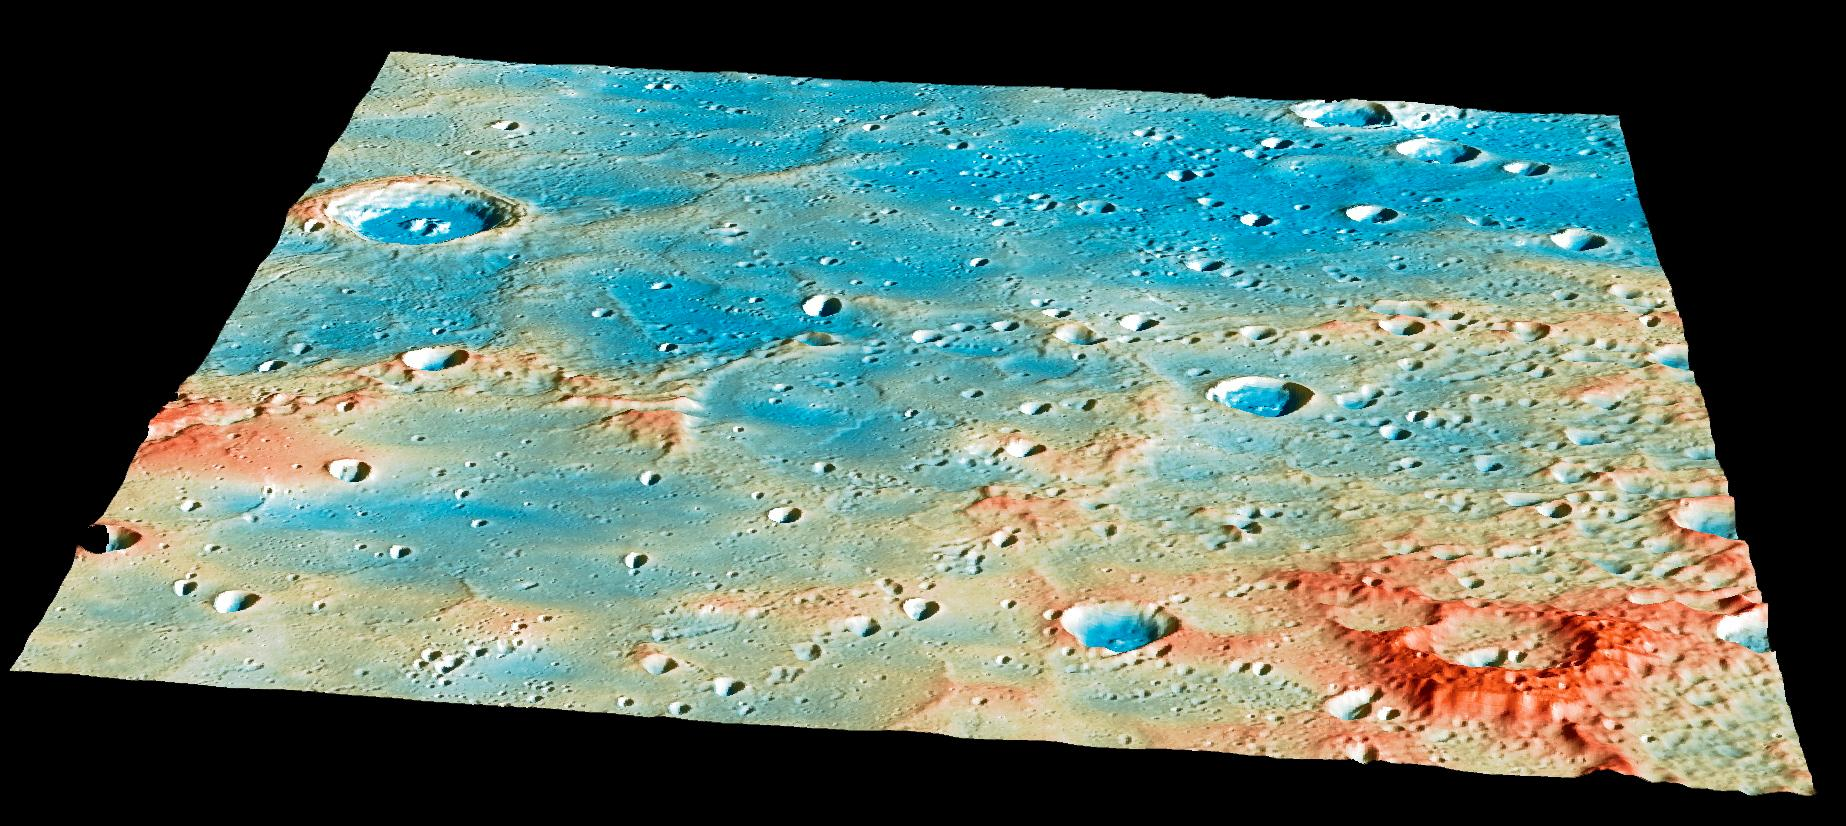 Farewell, MESSENGER! NASA Probe Crashes Into Mercury